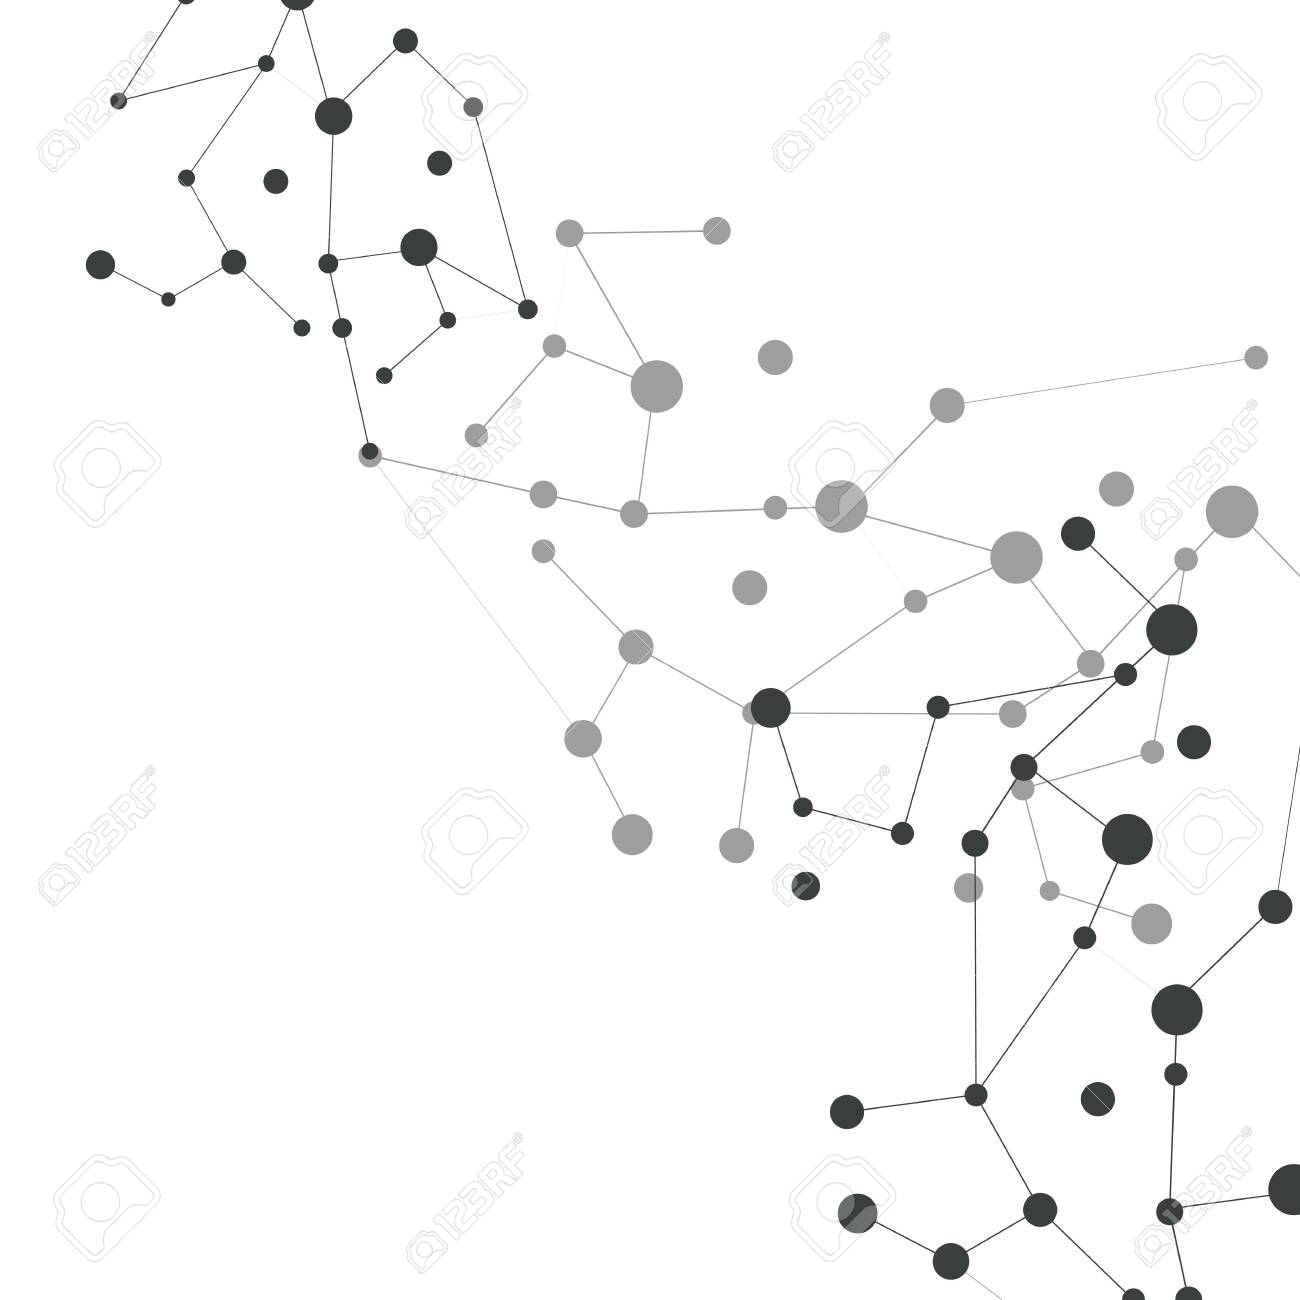 abstract gray molecular compounds with dots and lines to the right - 150887060